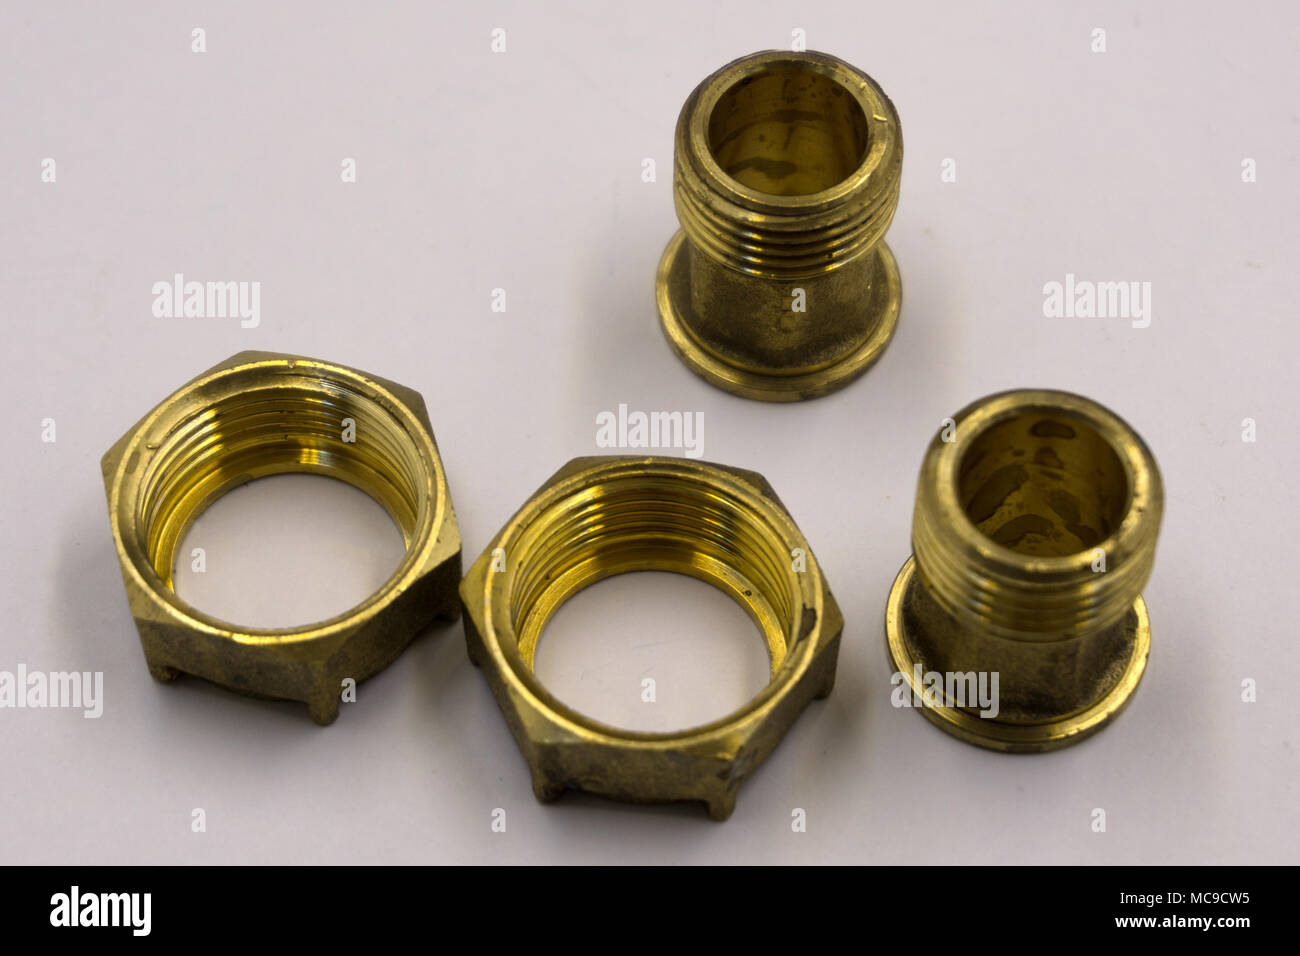 Bronze nut with trapezoidal thread - Stock Image